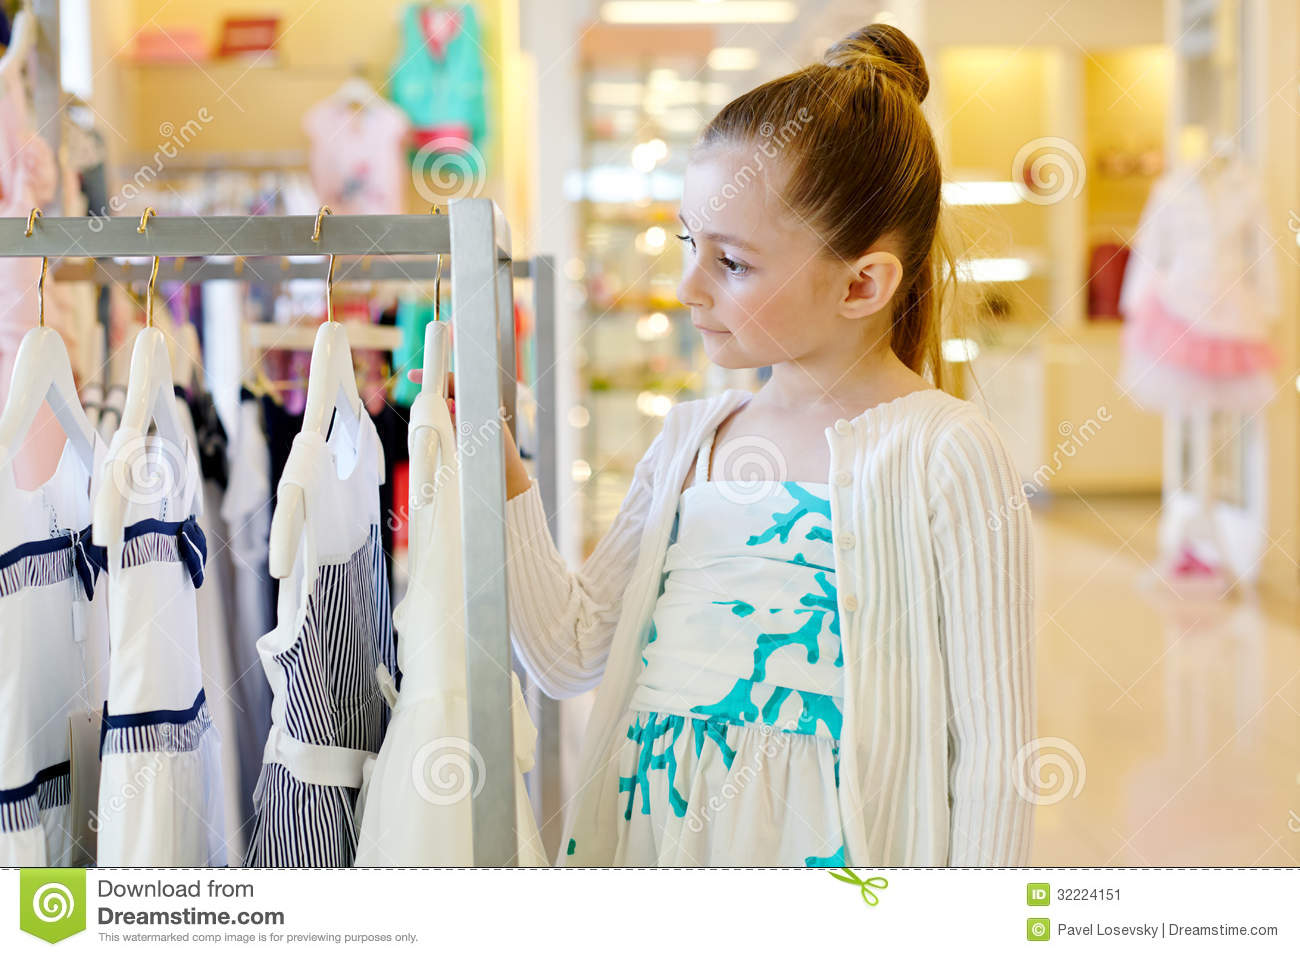 Infants clothing stores Women clothing stores